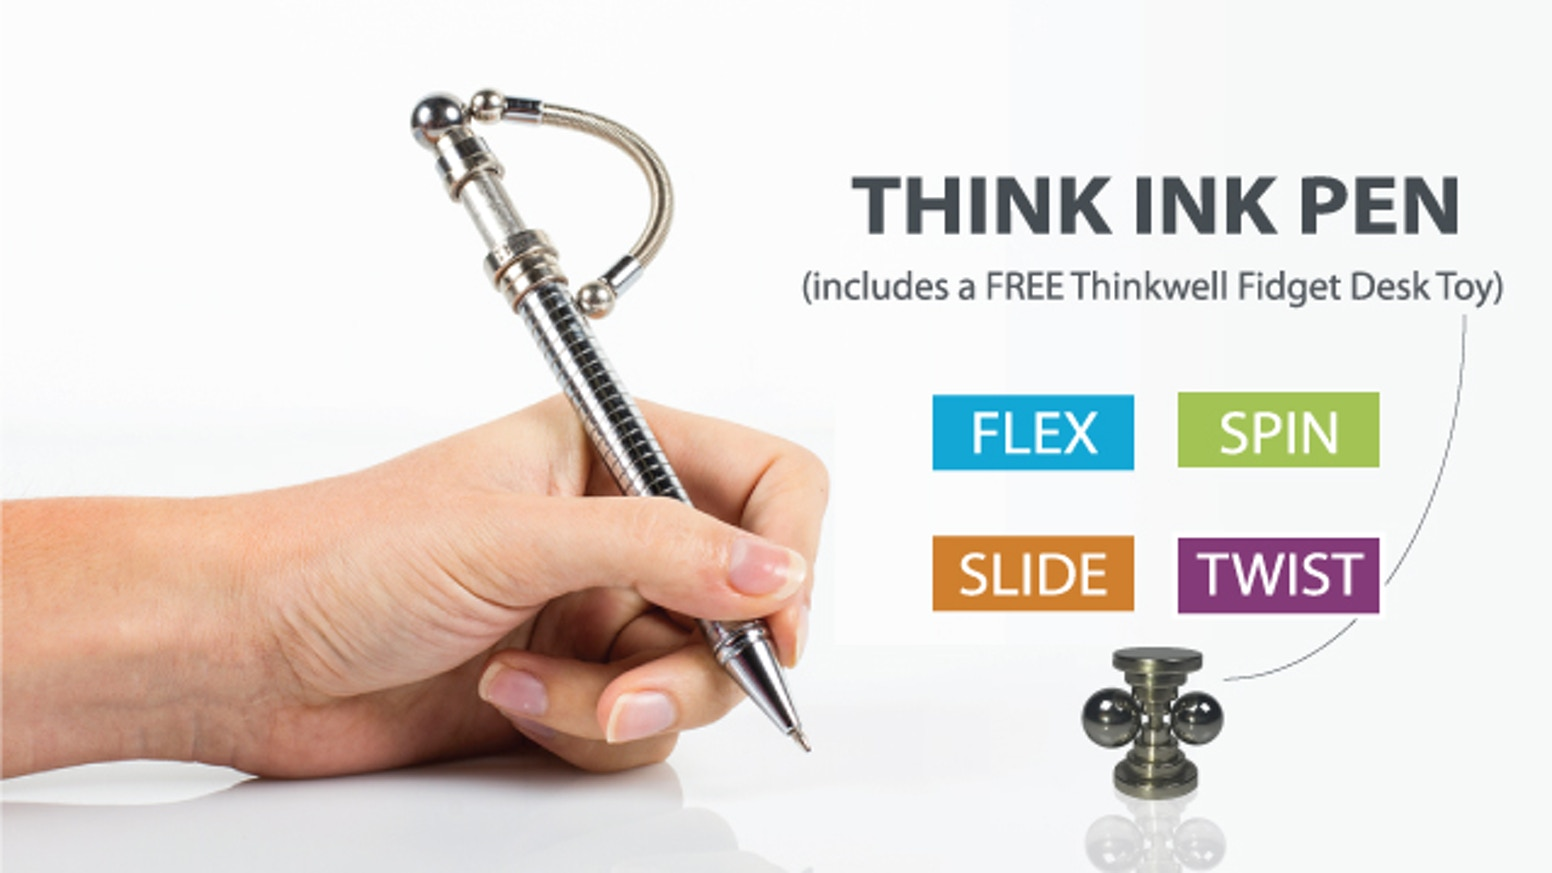 Think Ink Pens Fidget For Focus By Timeflyz Reminders Inc